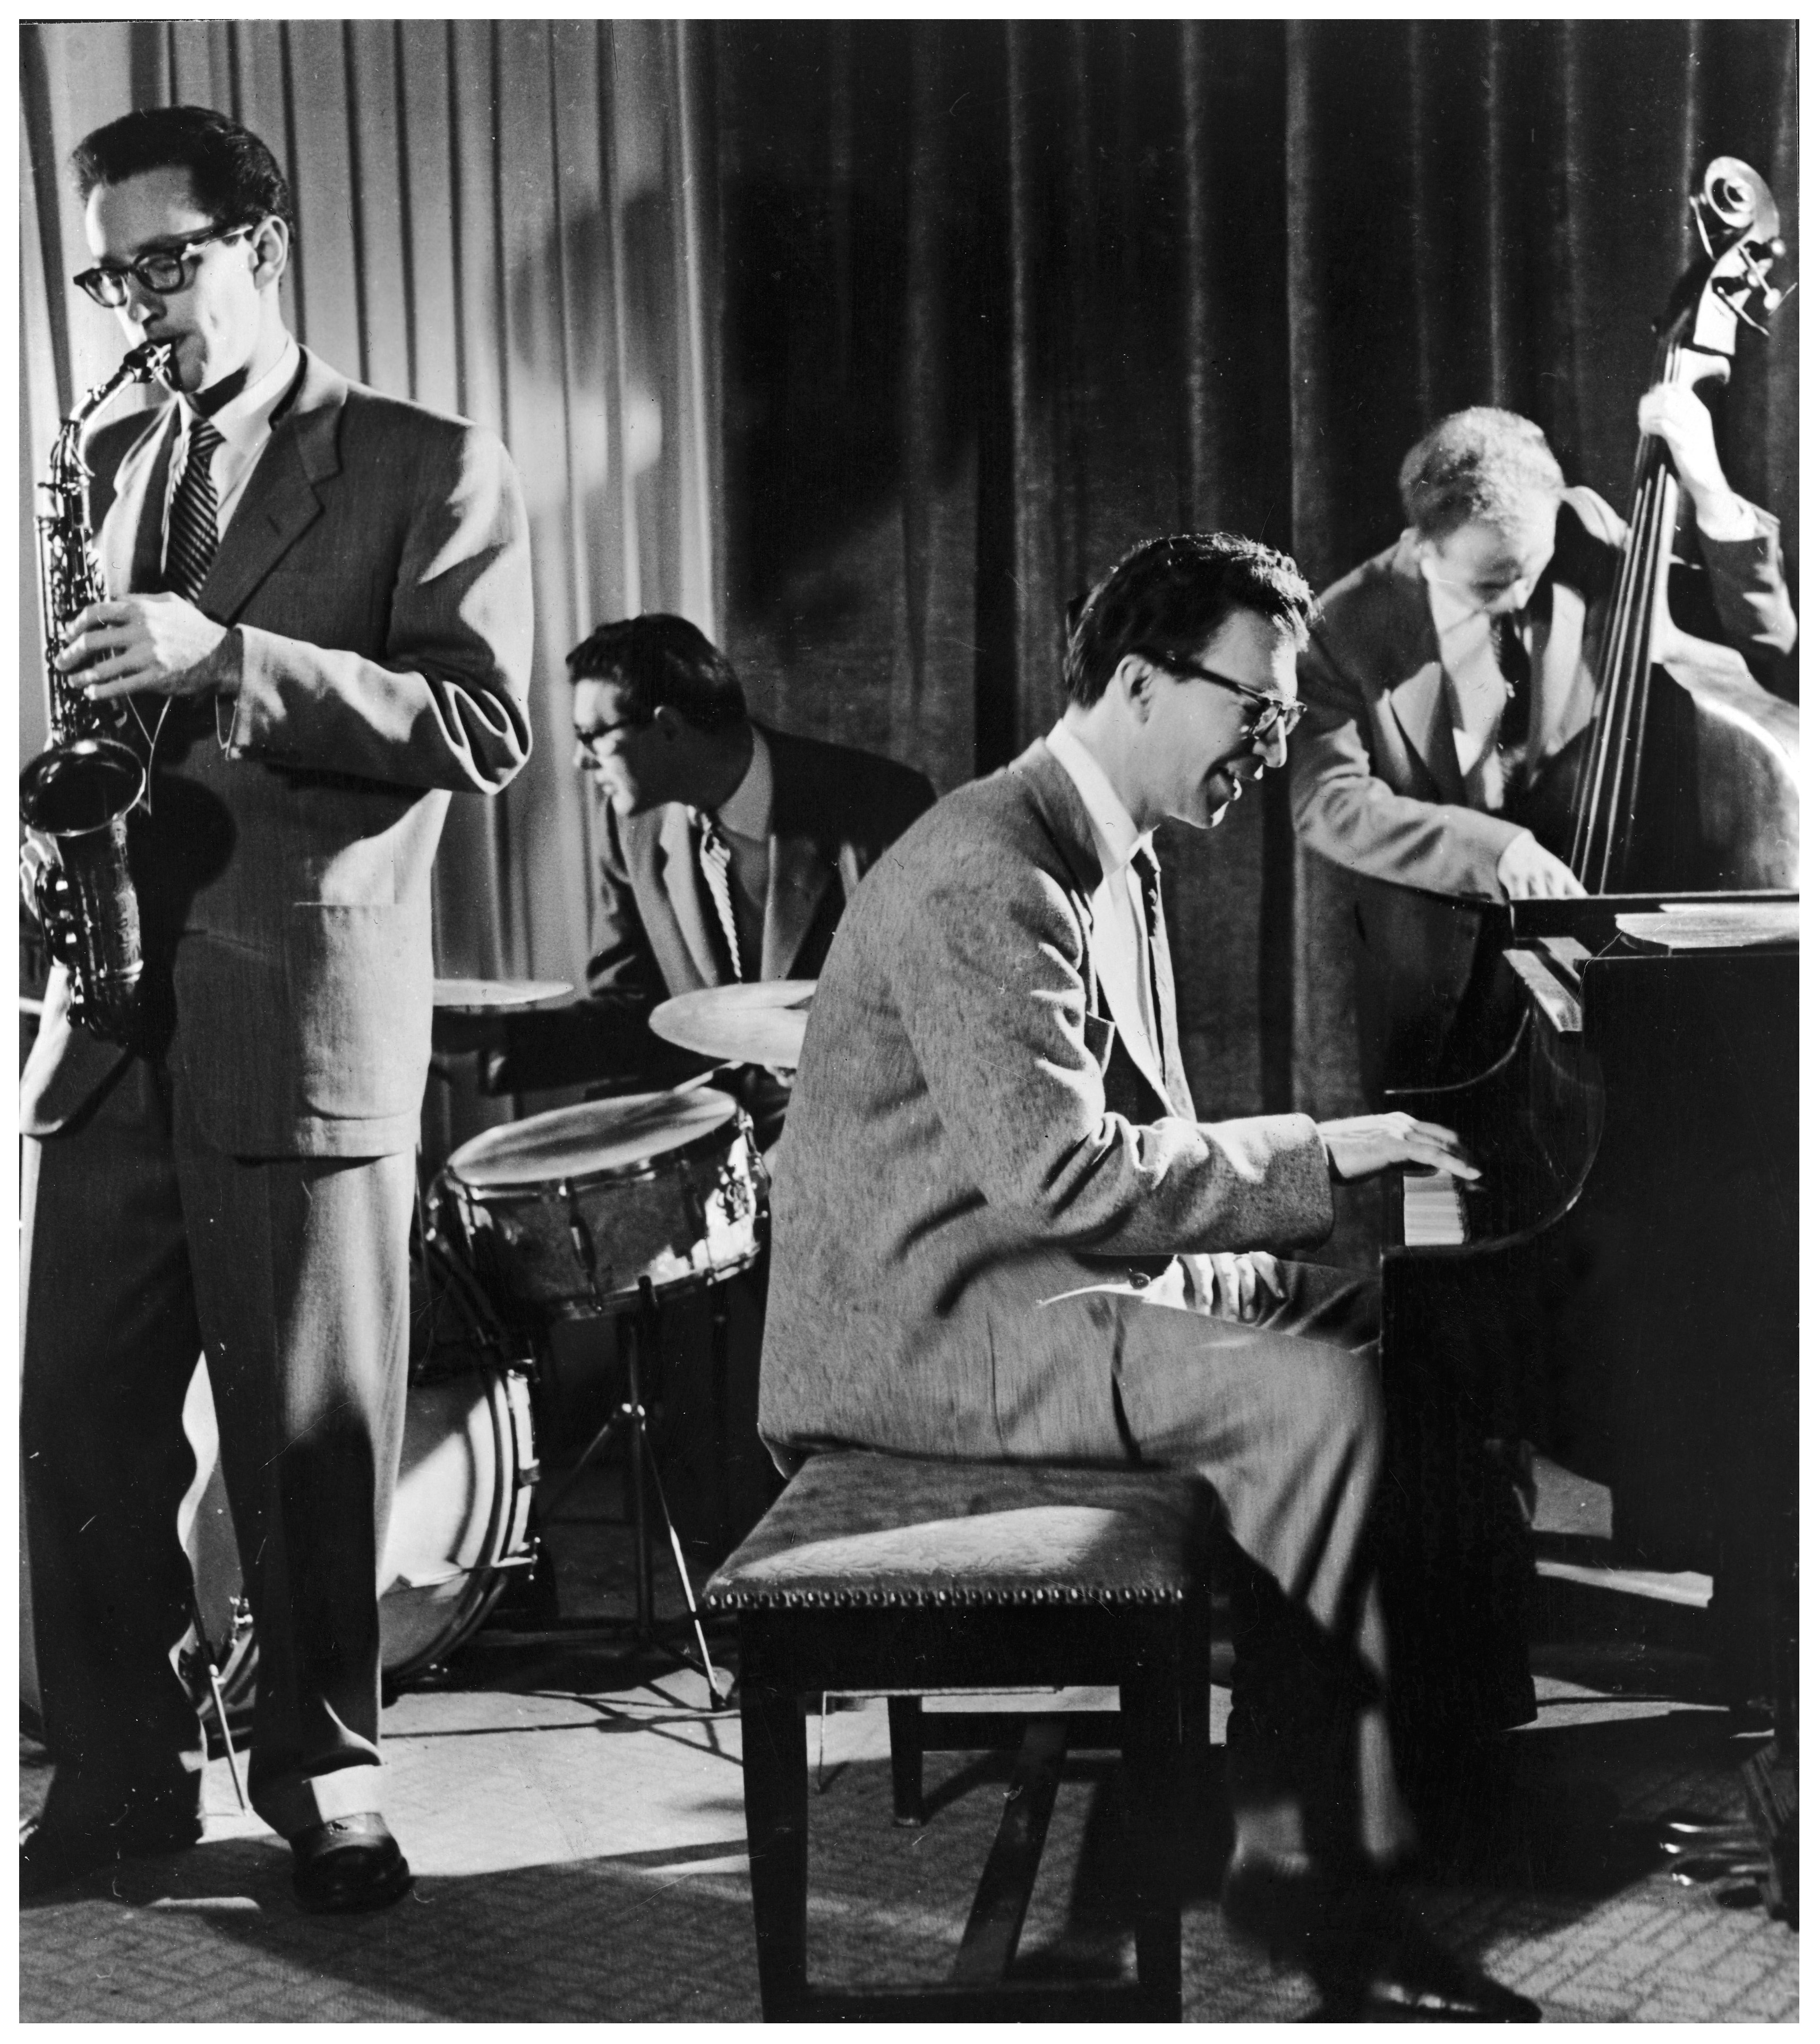 American jazz pianist and composer Dave Brubeck Dies (1920-2012)